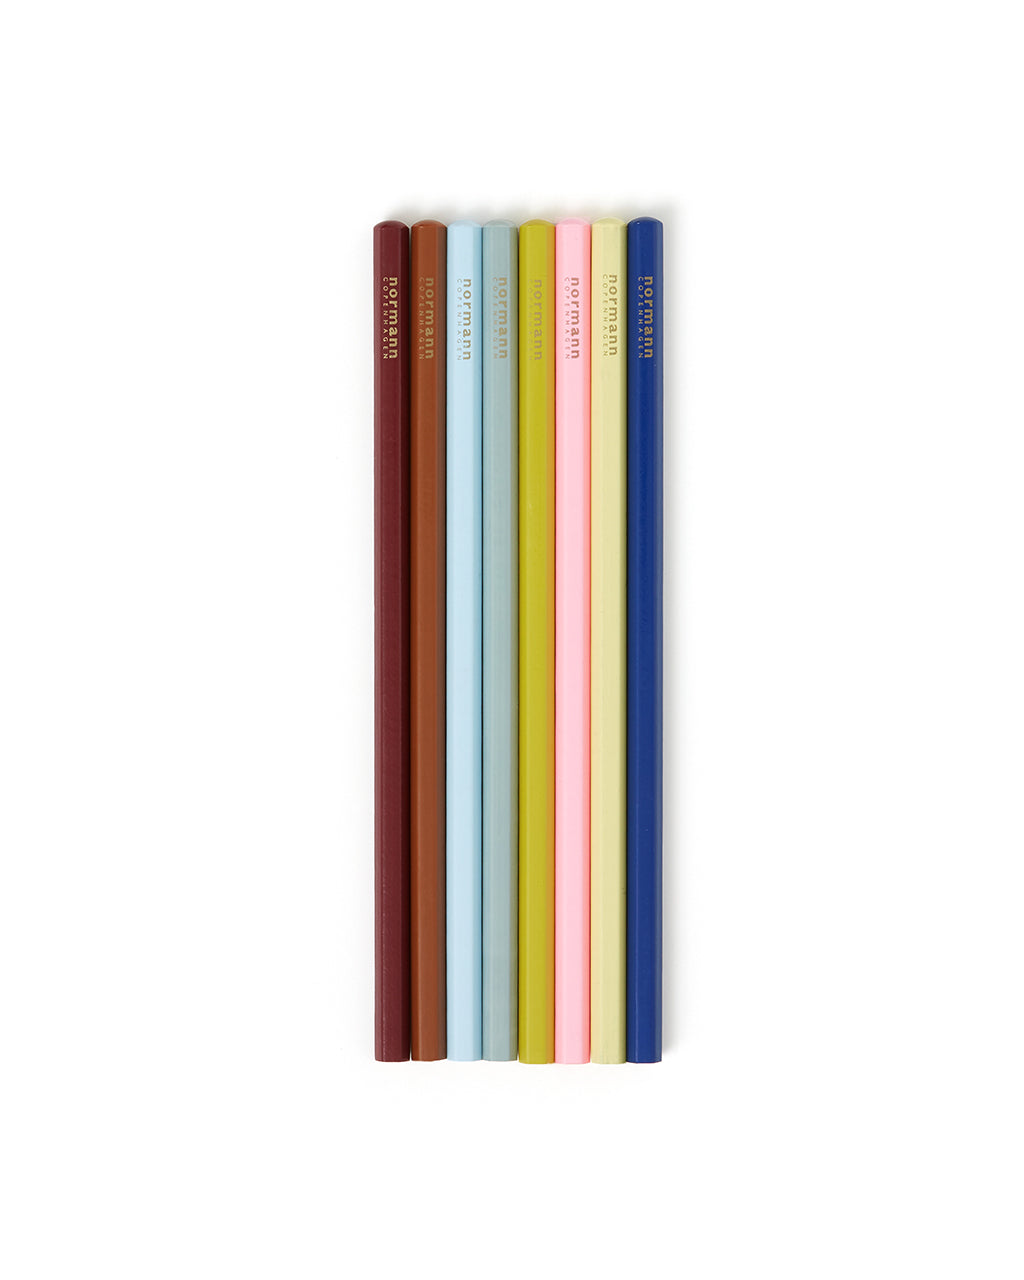 Multi Colored Pencils - 8 Pack by normann - pencil - ban.do